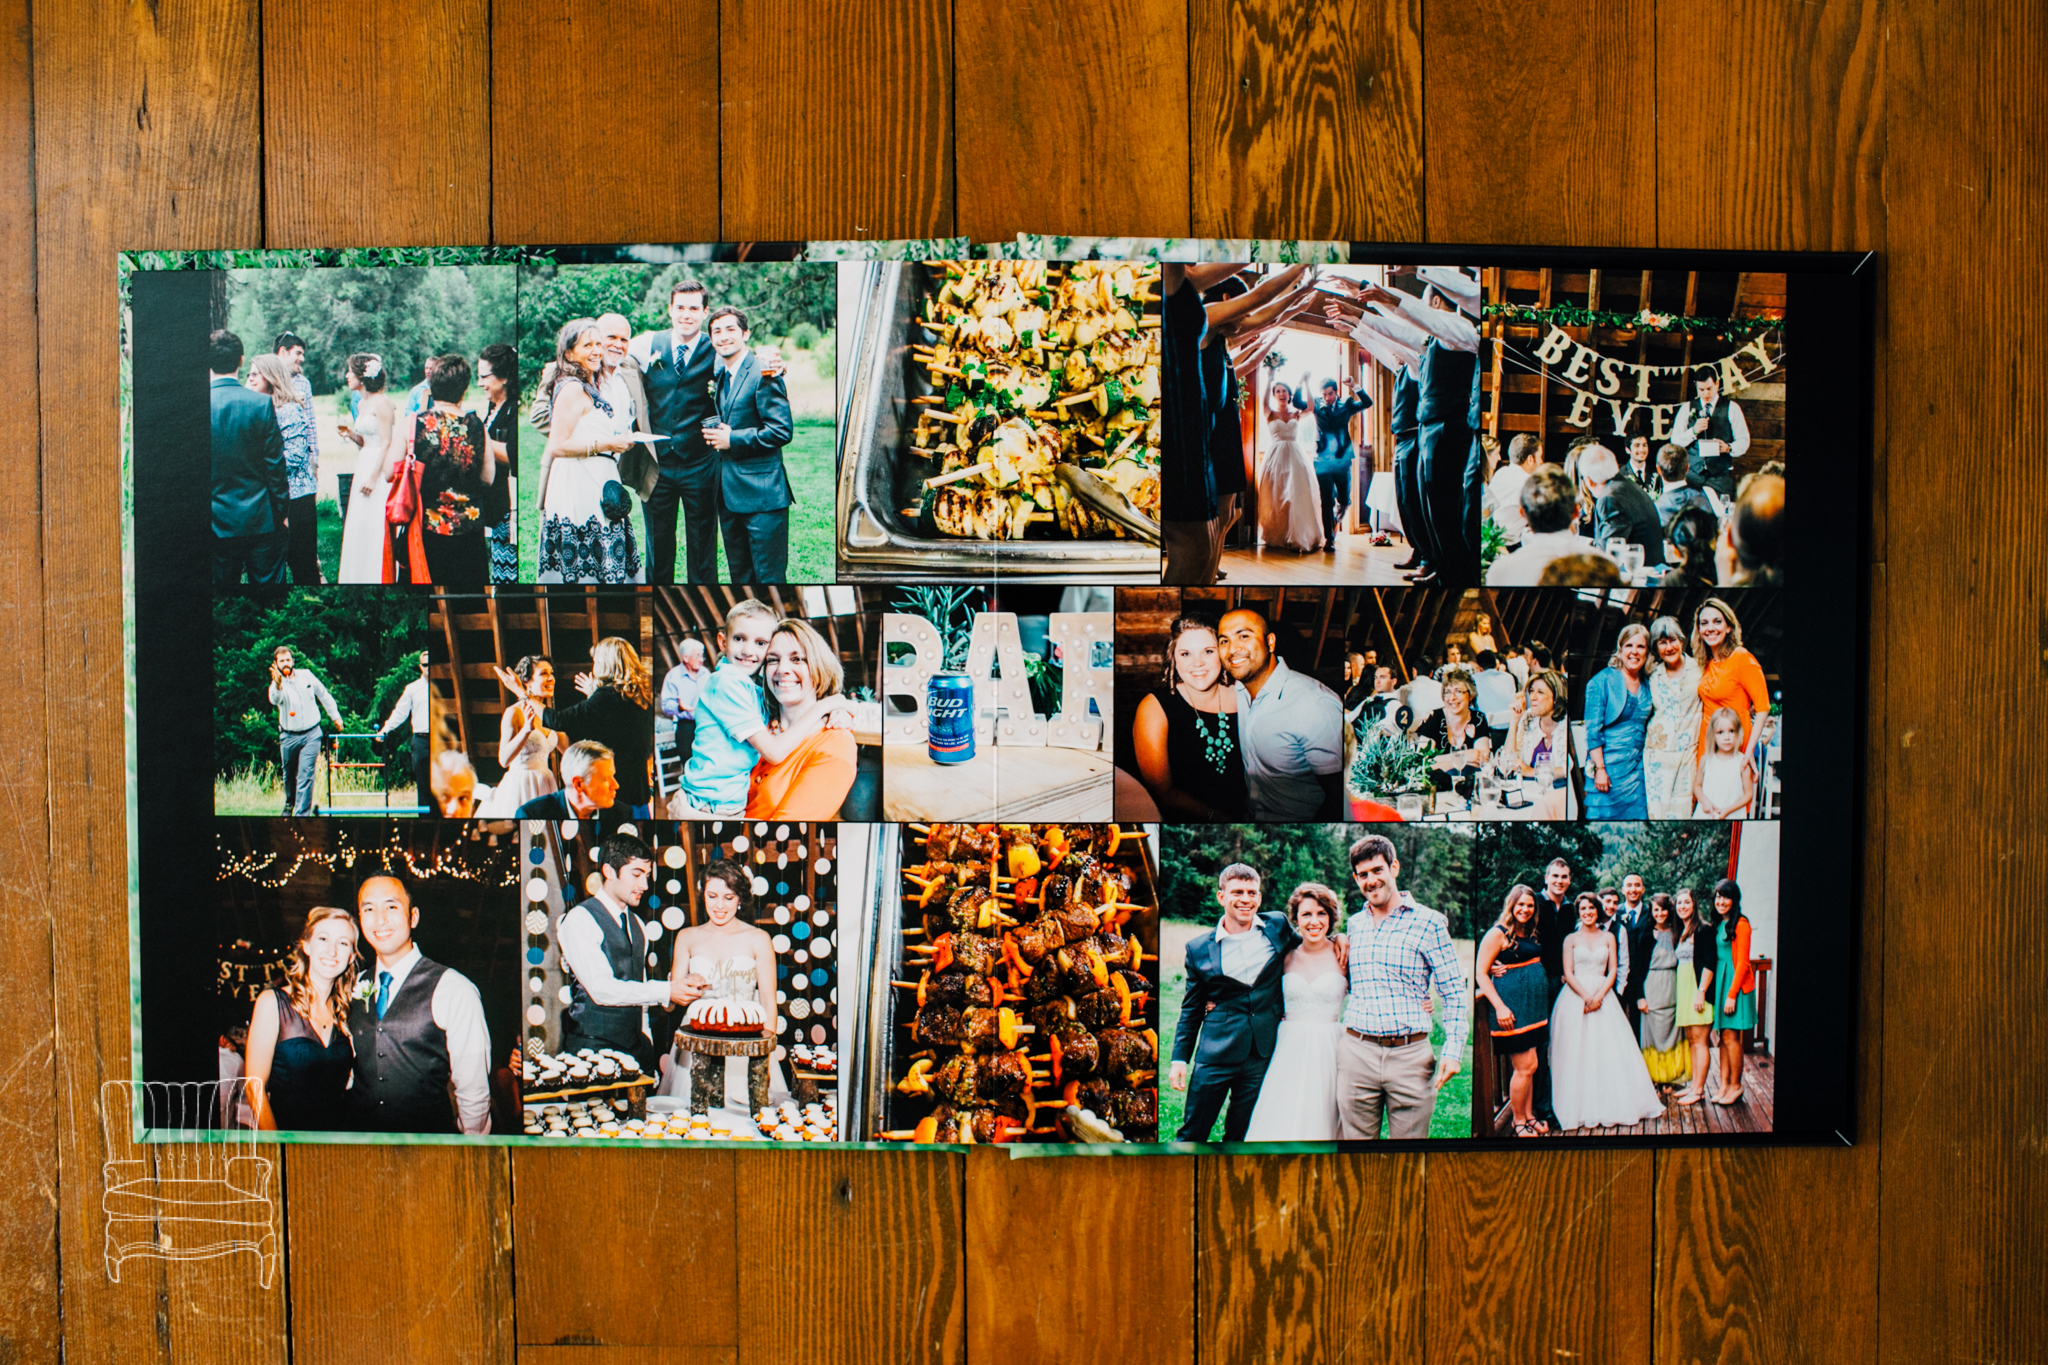 Layouts can be arranged to fit as many as 24 photos per page giving you the chance to show off more of your big day!